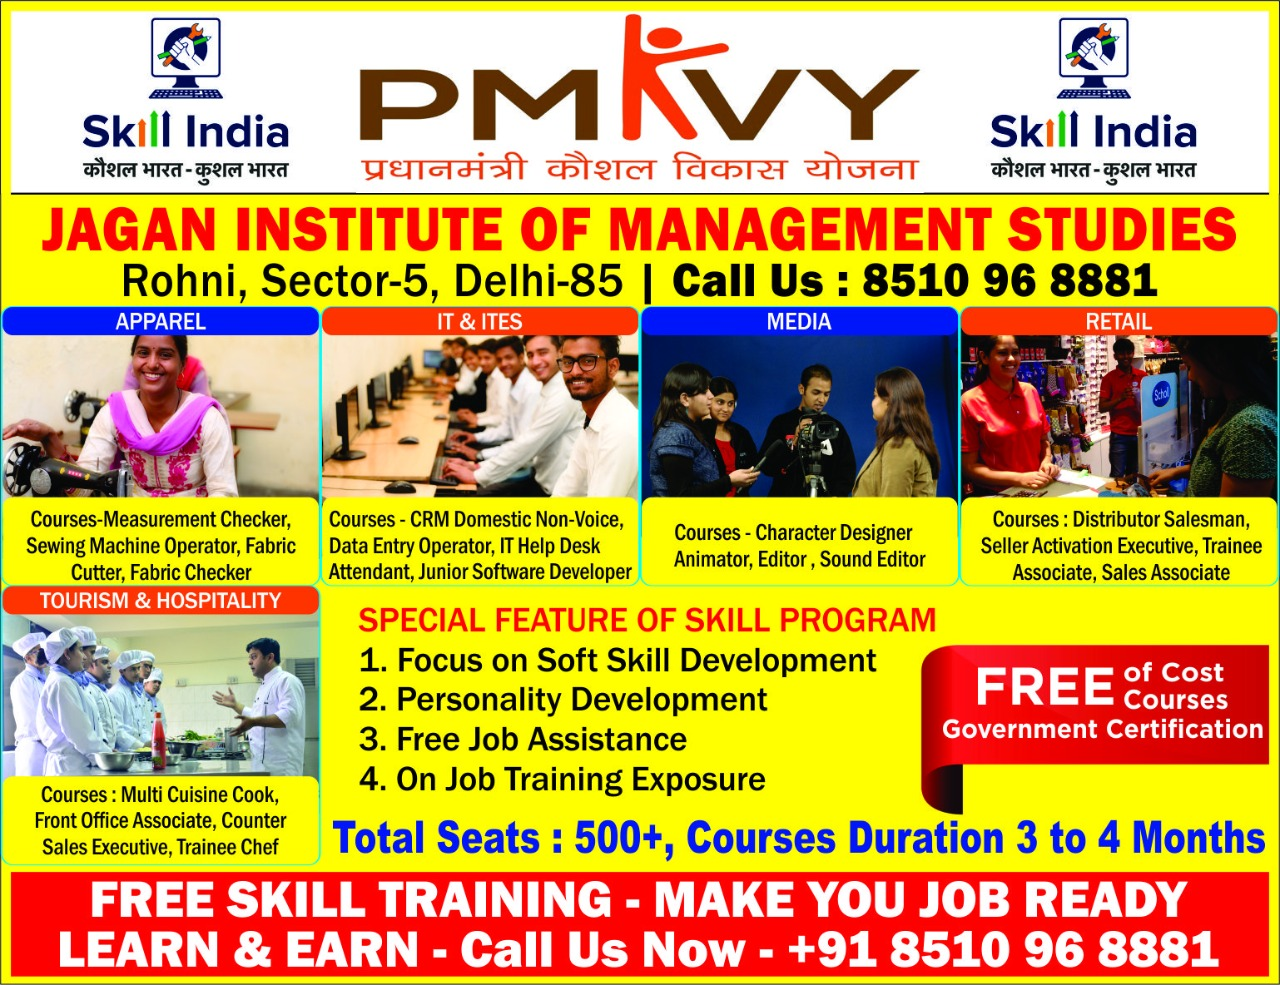 APPLICATIONS INVITED FOR ADMISSION TO PMKVY SCHEME IN VARIOUS SECTORS AND SPECIALIZATIONS.